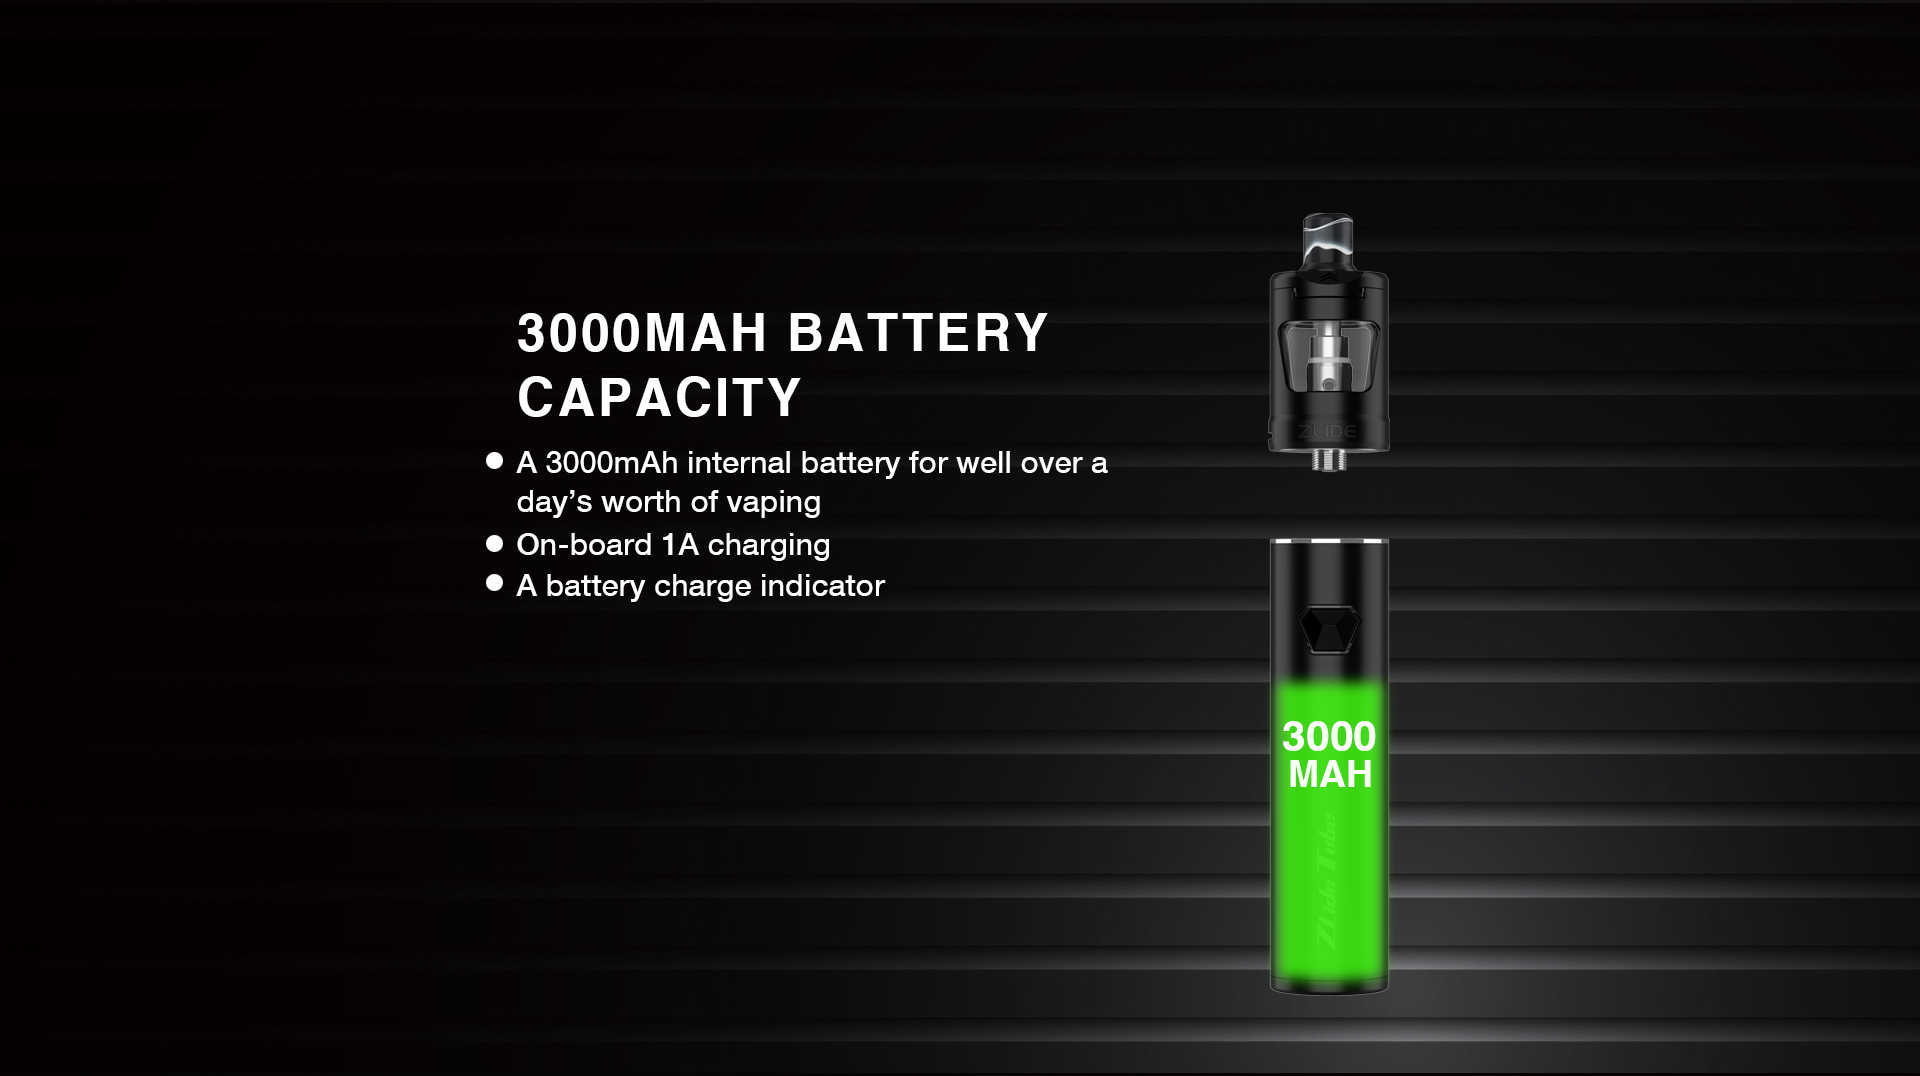 zlide tube kit 3000mah battery capacity